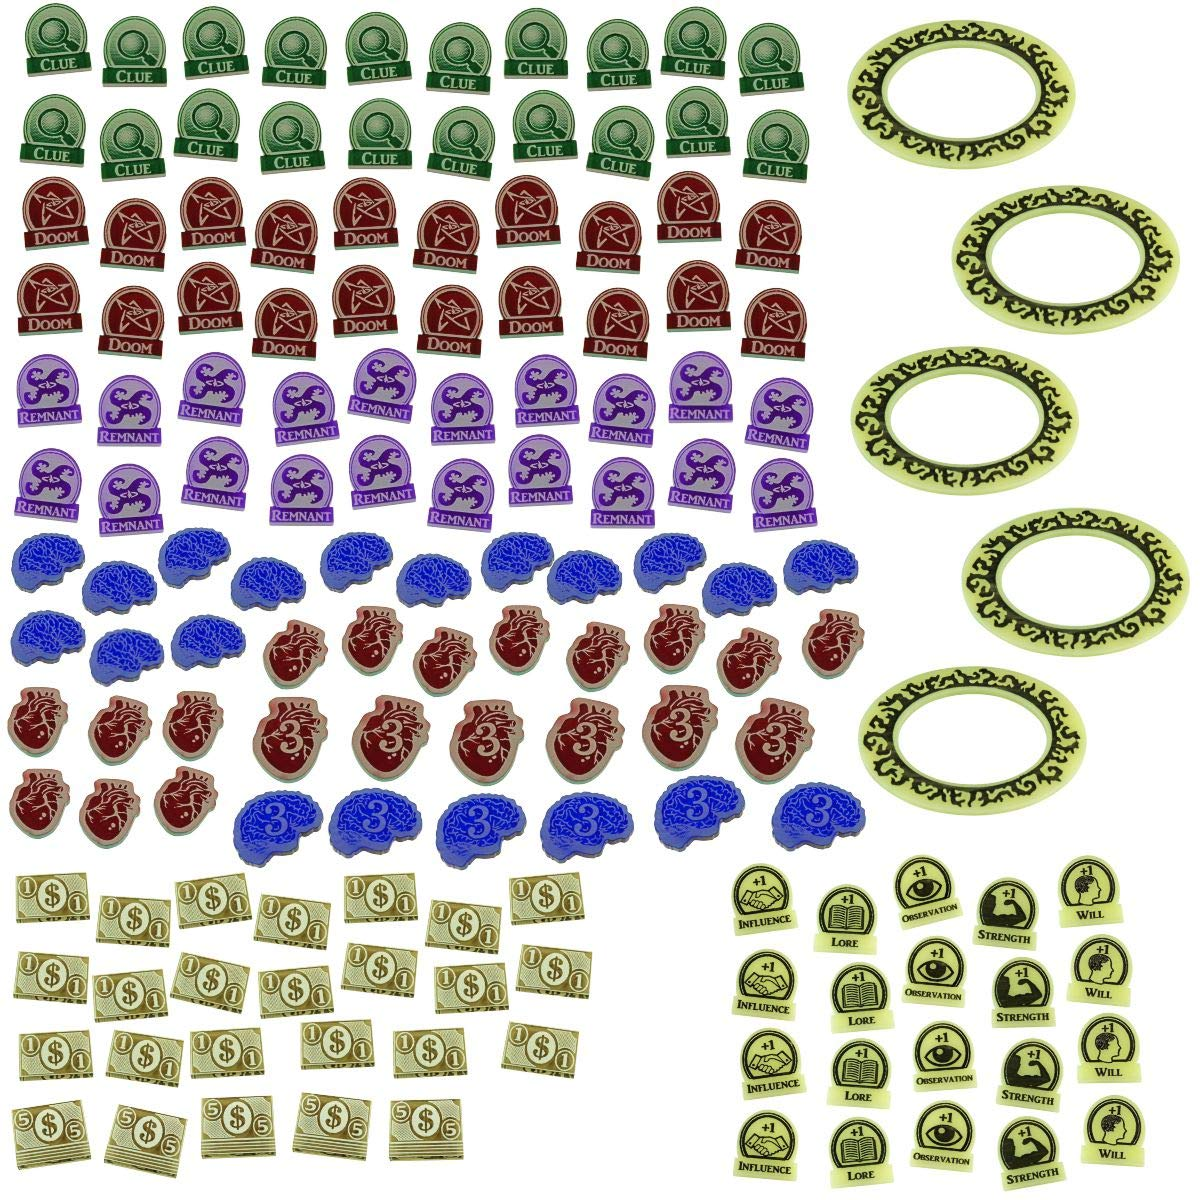 LITKO Game Upgrade Set Compatible with Arkham 3rd Edition, Multi-Colored (150)